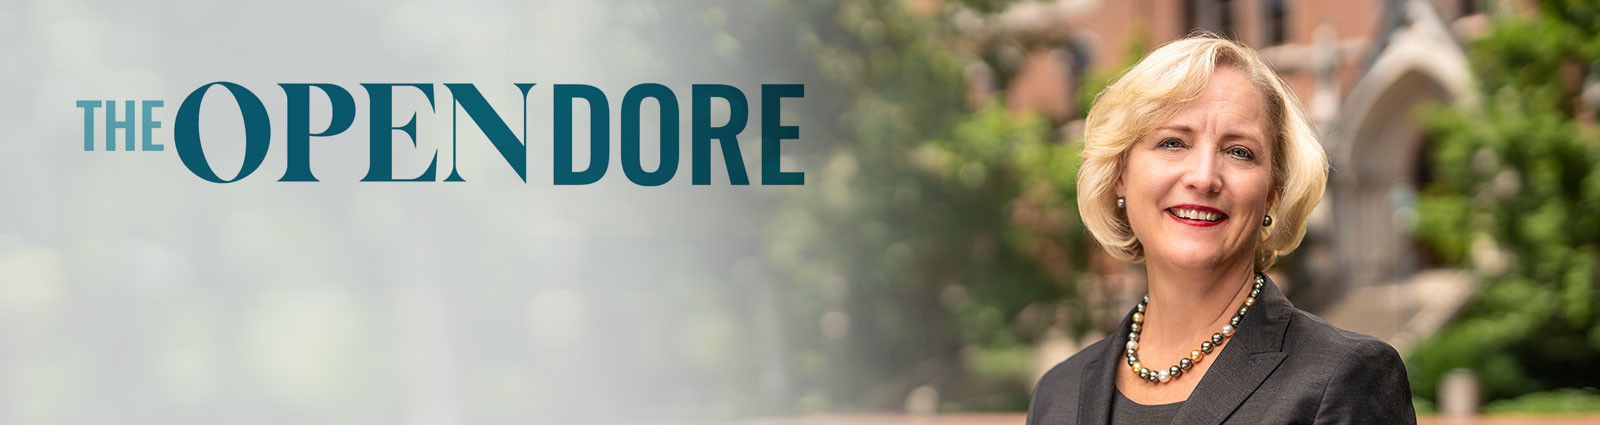 The Open Dore: Get the latest updates and information from Interim Chancellor and Provost Wente in the Open Dore newsletter.